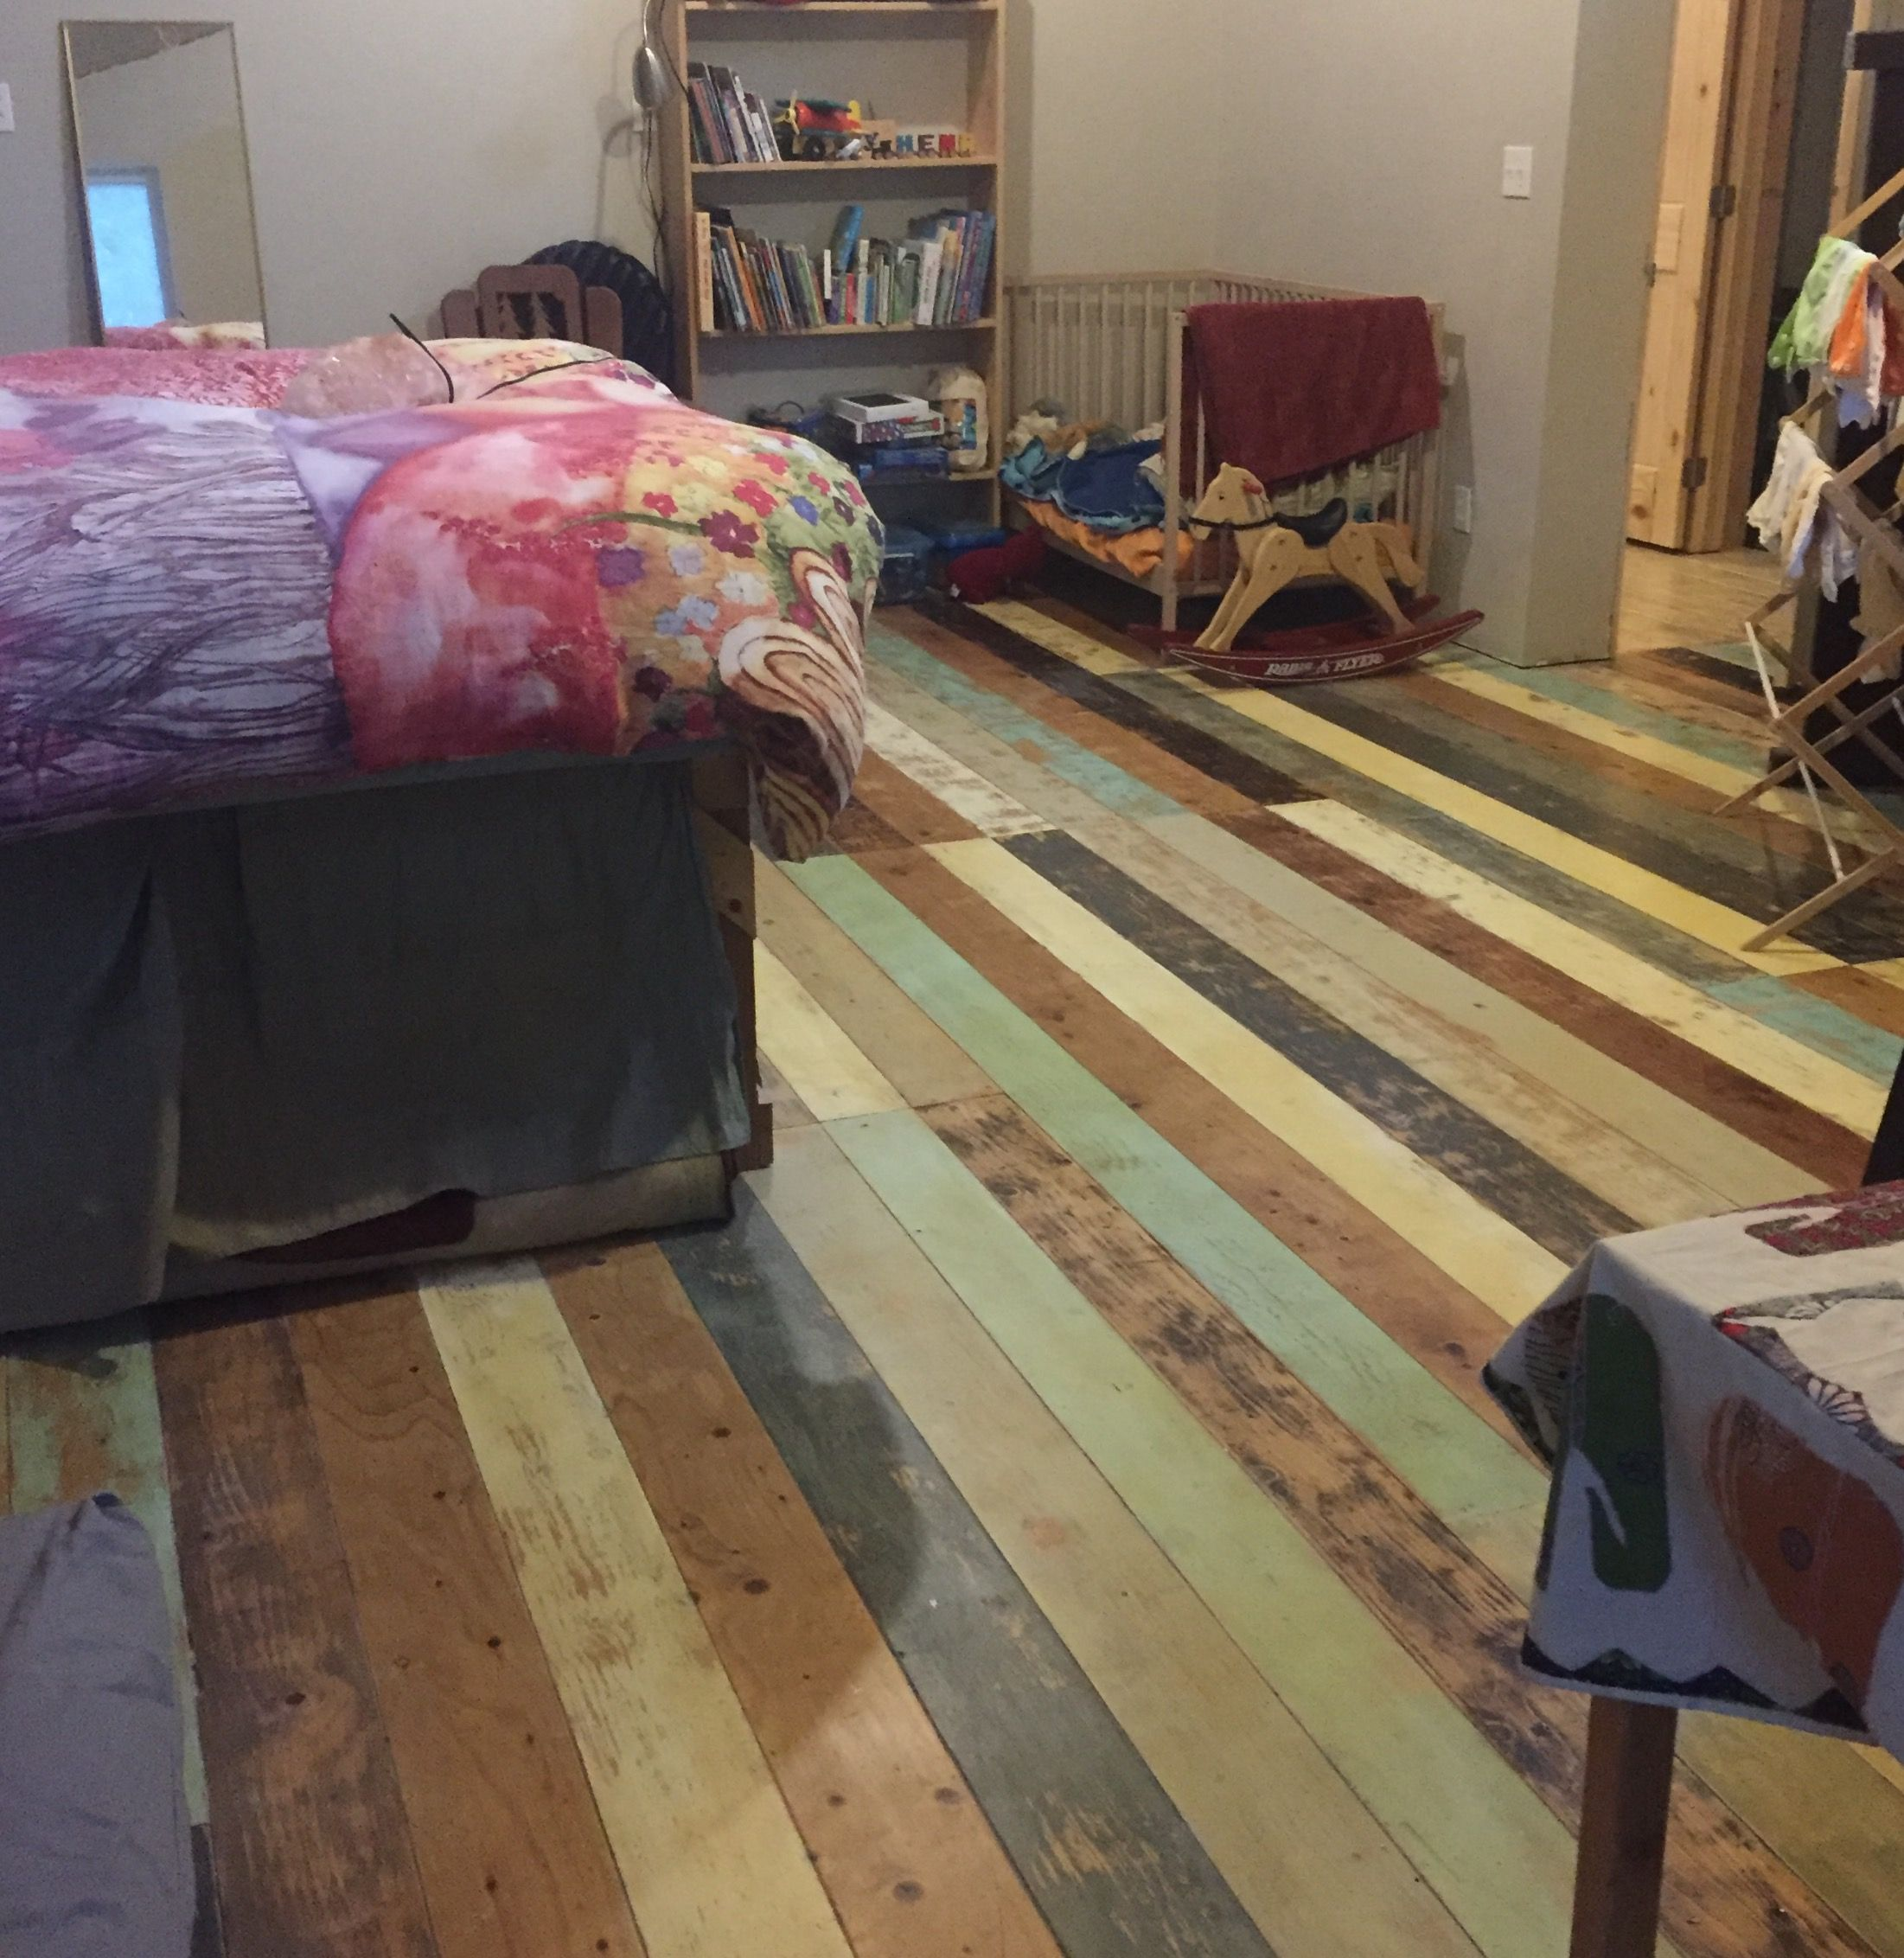 Patchwork Plywood Subfloor Faux Planks Routed In Using 1 8 Deep V Groove Bit And A Router Sled Jo Diy House Projects Plywood Subfloor Plywood Plank Flooring